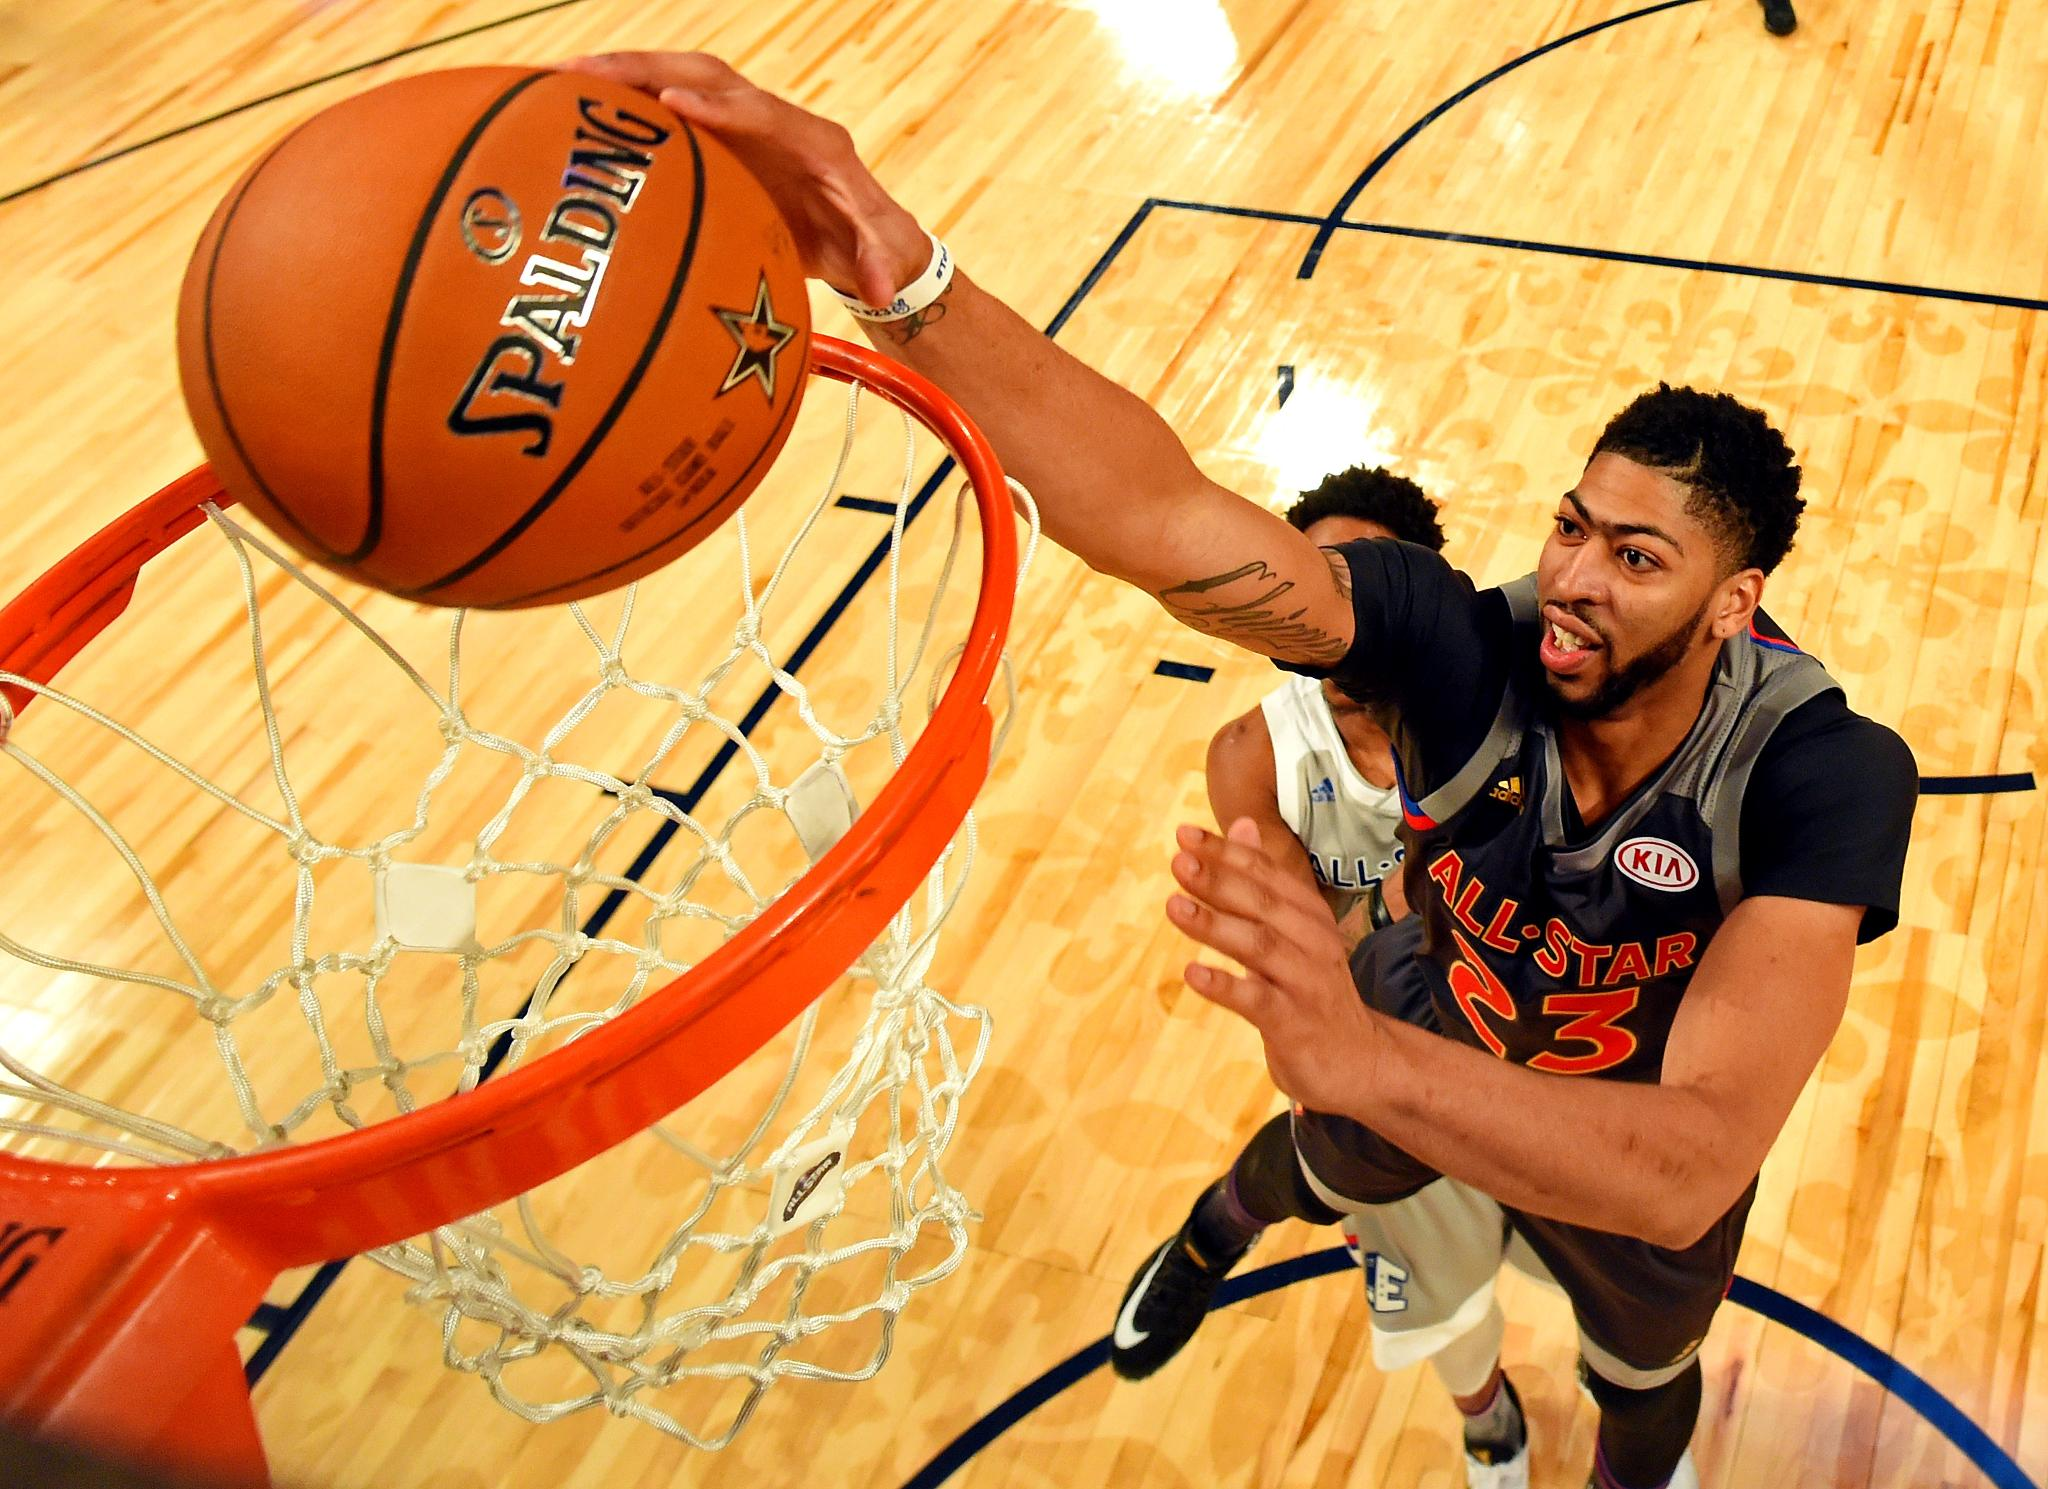 #AnthonyDavis sets #NBAAllStar record with 52 pts as West races past East  HIGHLIGHTS: https://t.co/m1DbAFy0lc https://t.co/cVBaoJrwdb